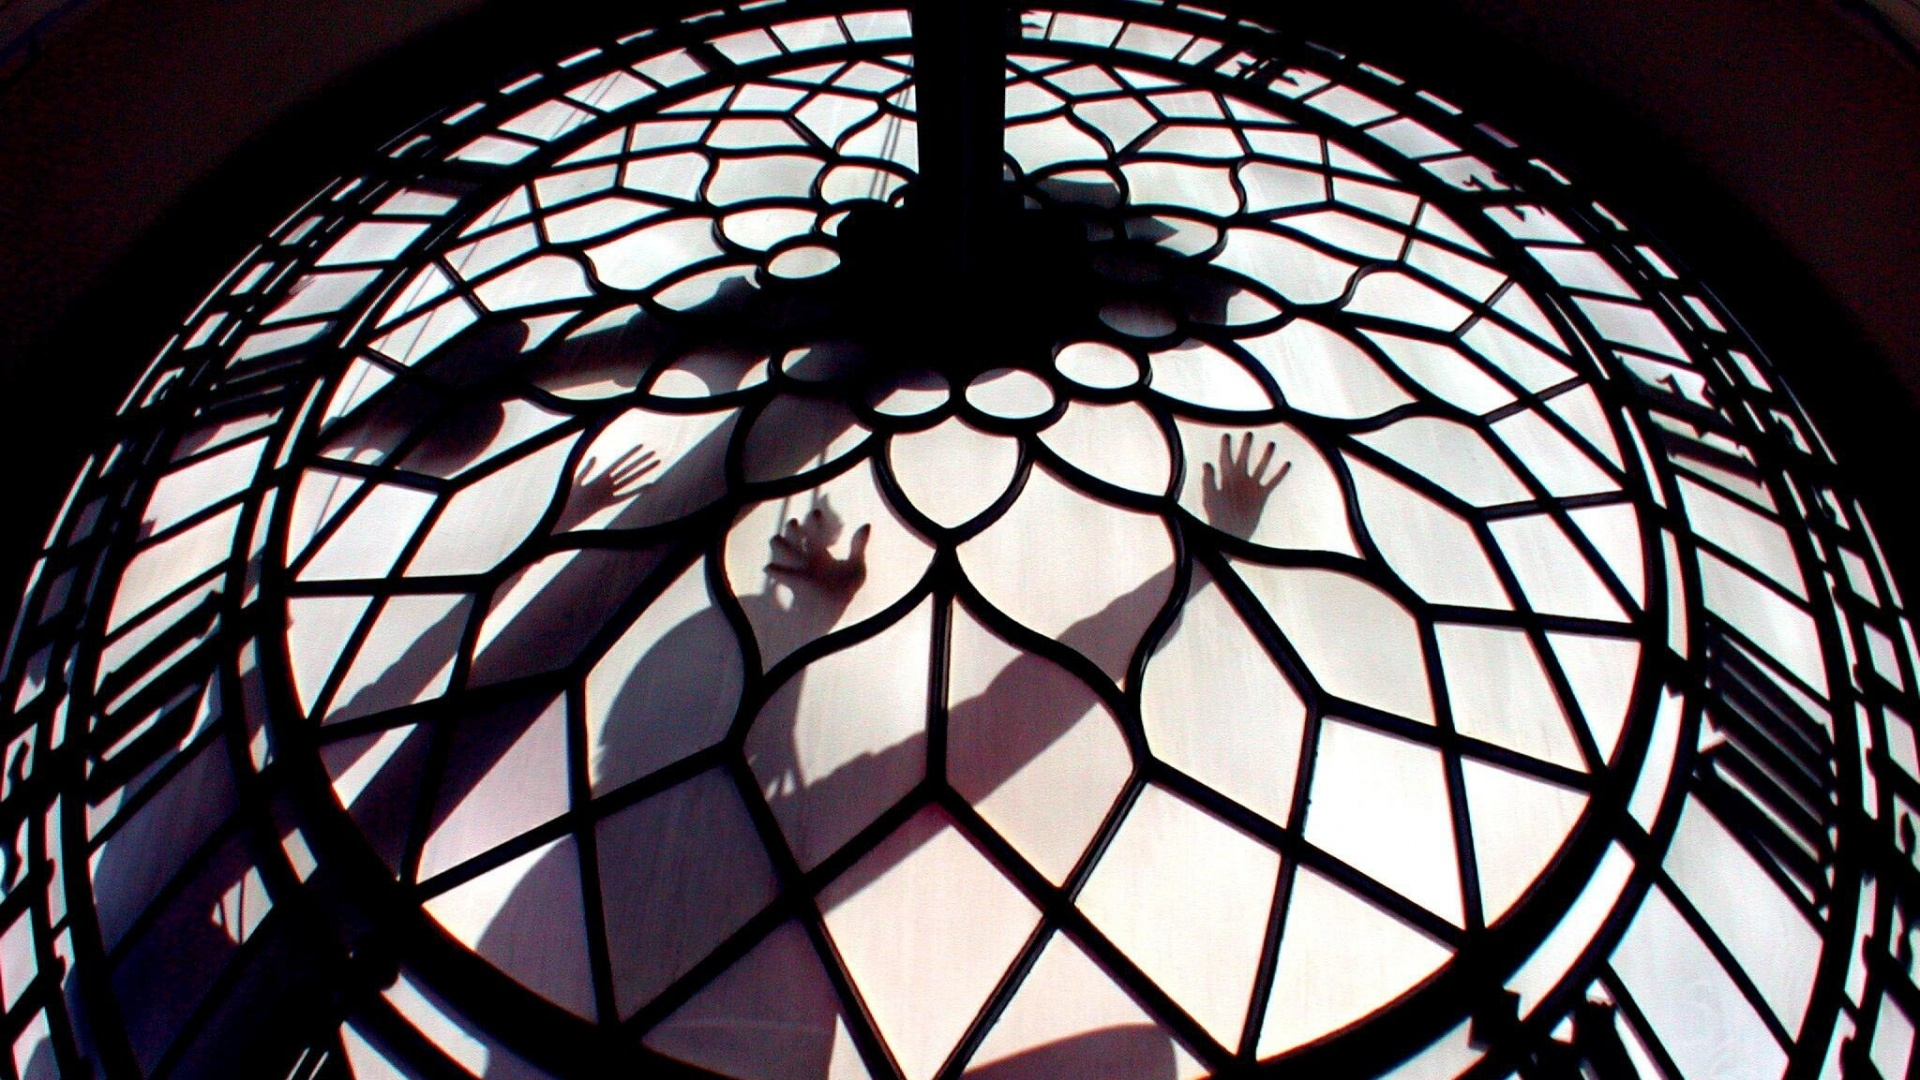 Abseilers clean one of the faces of the Big Ben clock on the tower of the Houses of Parliament in London